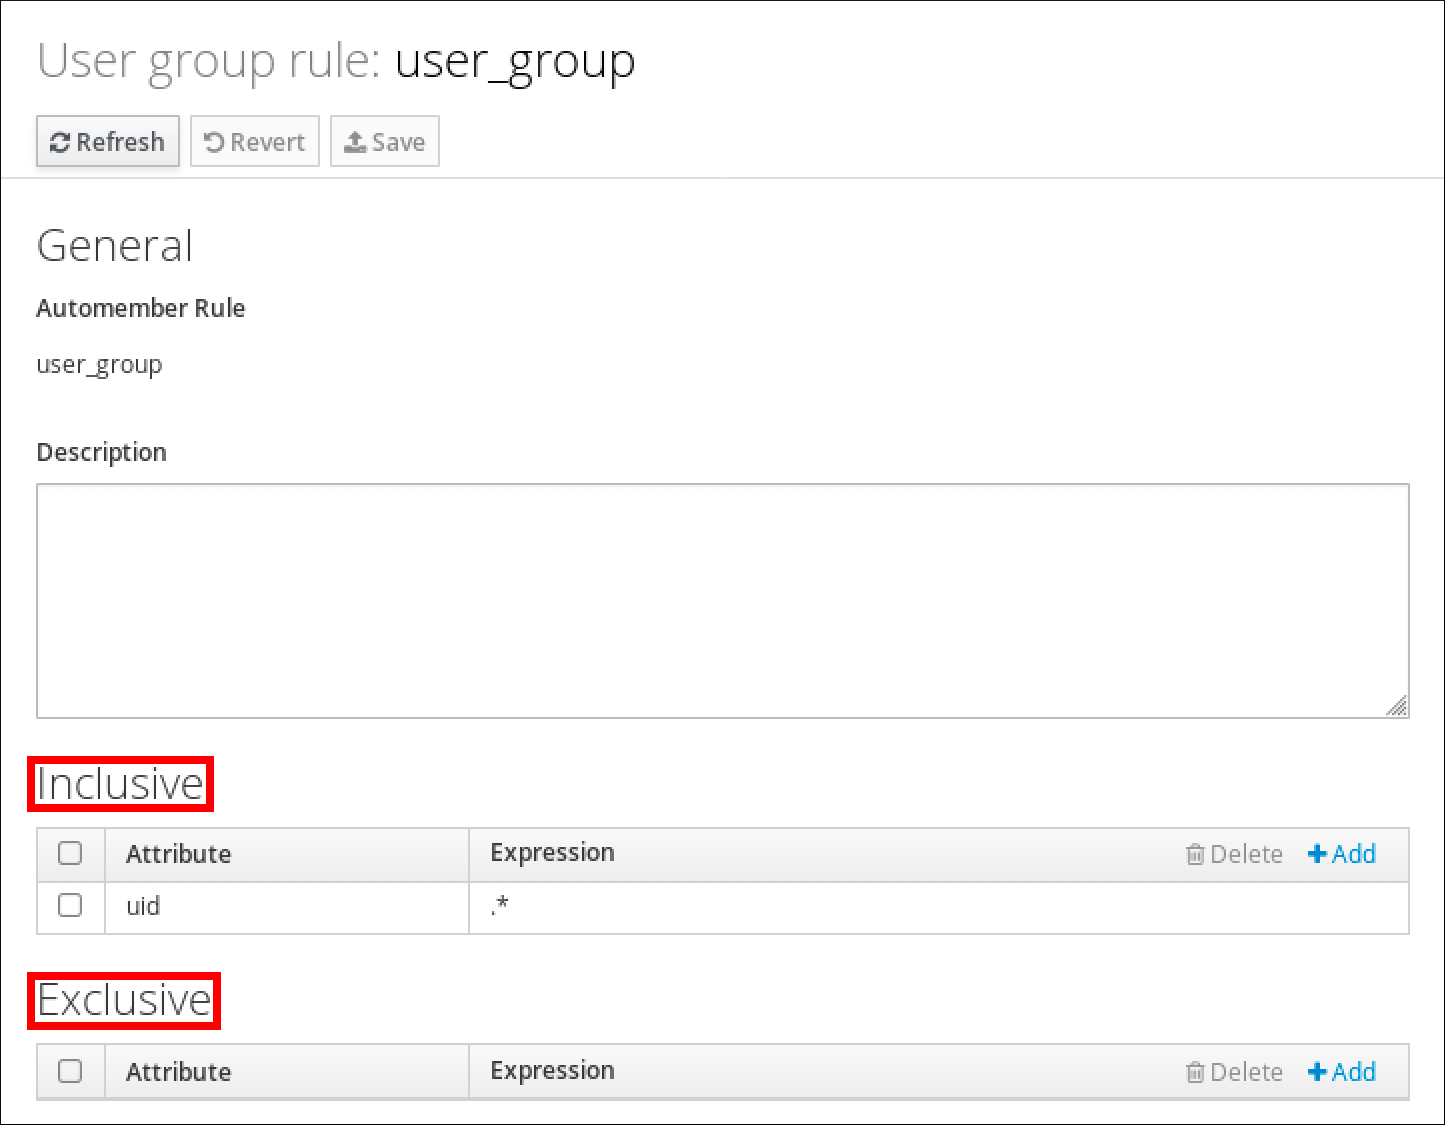 """A screenshot of the details of the user group rule """"user_group."""" There is a """"General"""" section displaying the name of the Automember rule and a """"Description."""" There is an """"Inclusive"""" section at the bottom with a table displaying entries with columns labeled """"Attribute"""" and """"Expression."""" This table has one entry with uid as the Attribute and .* as the Expression. At the very bottom there is an """"Exclusive"""" section with a table that matches the structure of the """"Inclusive"""" table but it has no entries."""